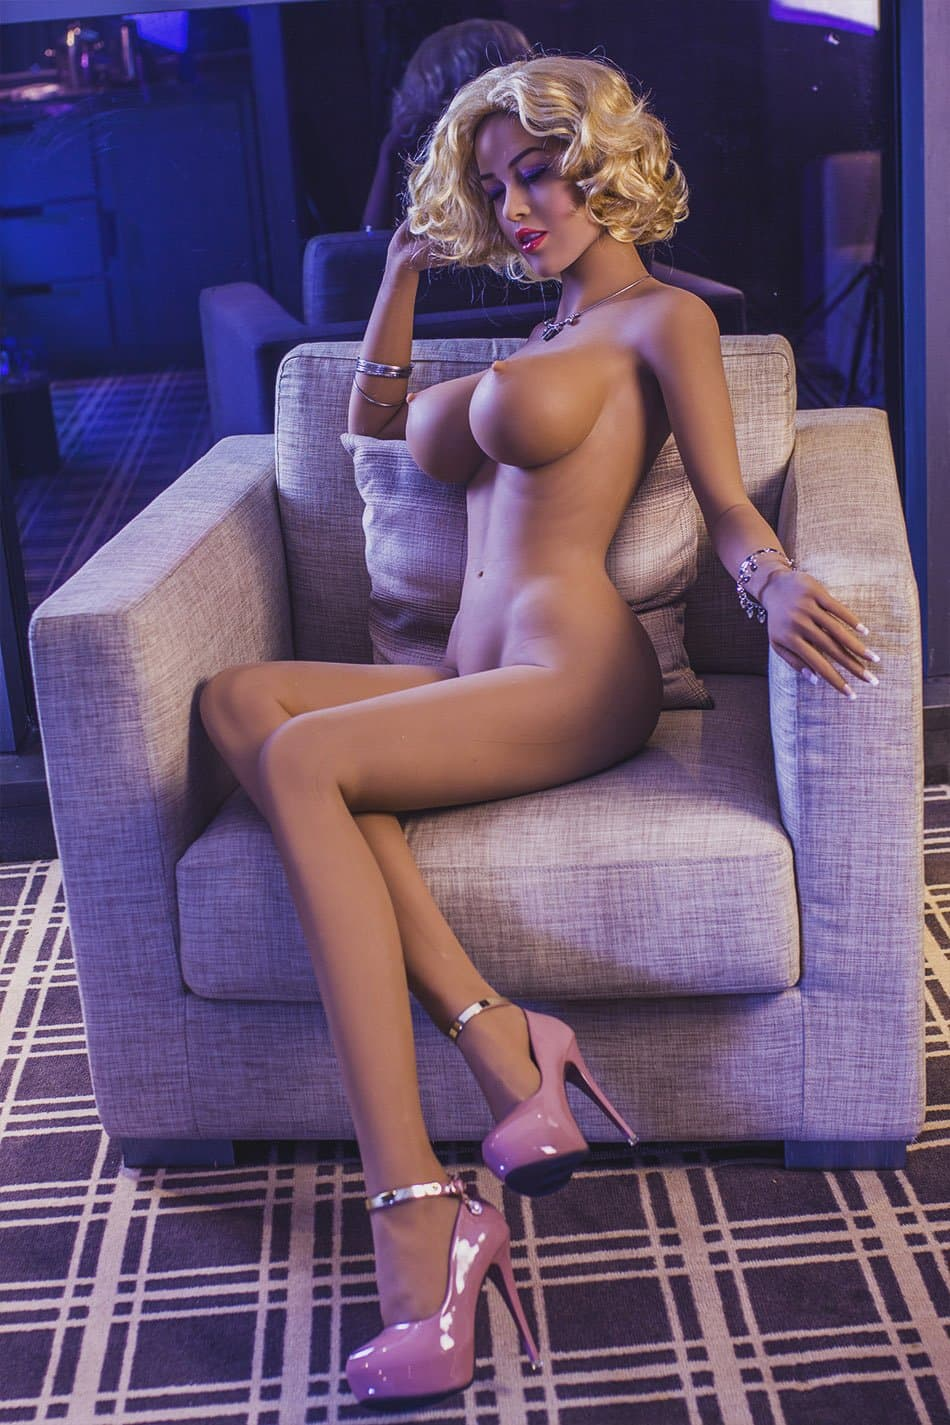 josephine 165cm blonde jy big boobs athletic tan skin tpe sex doll(10)